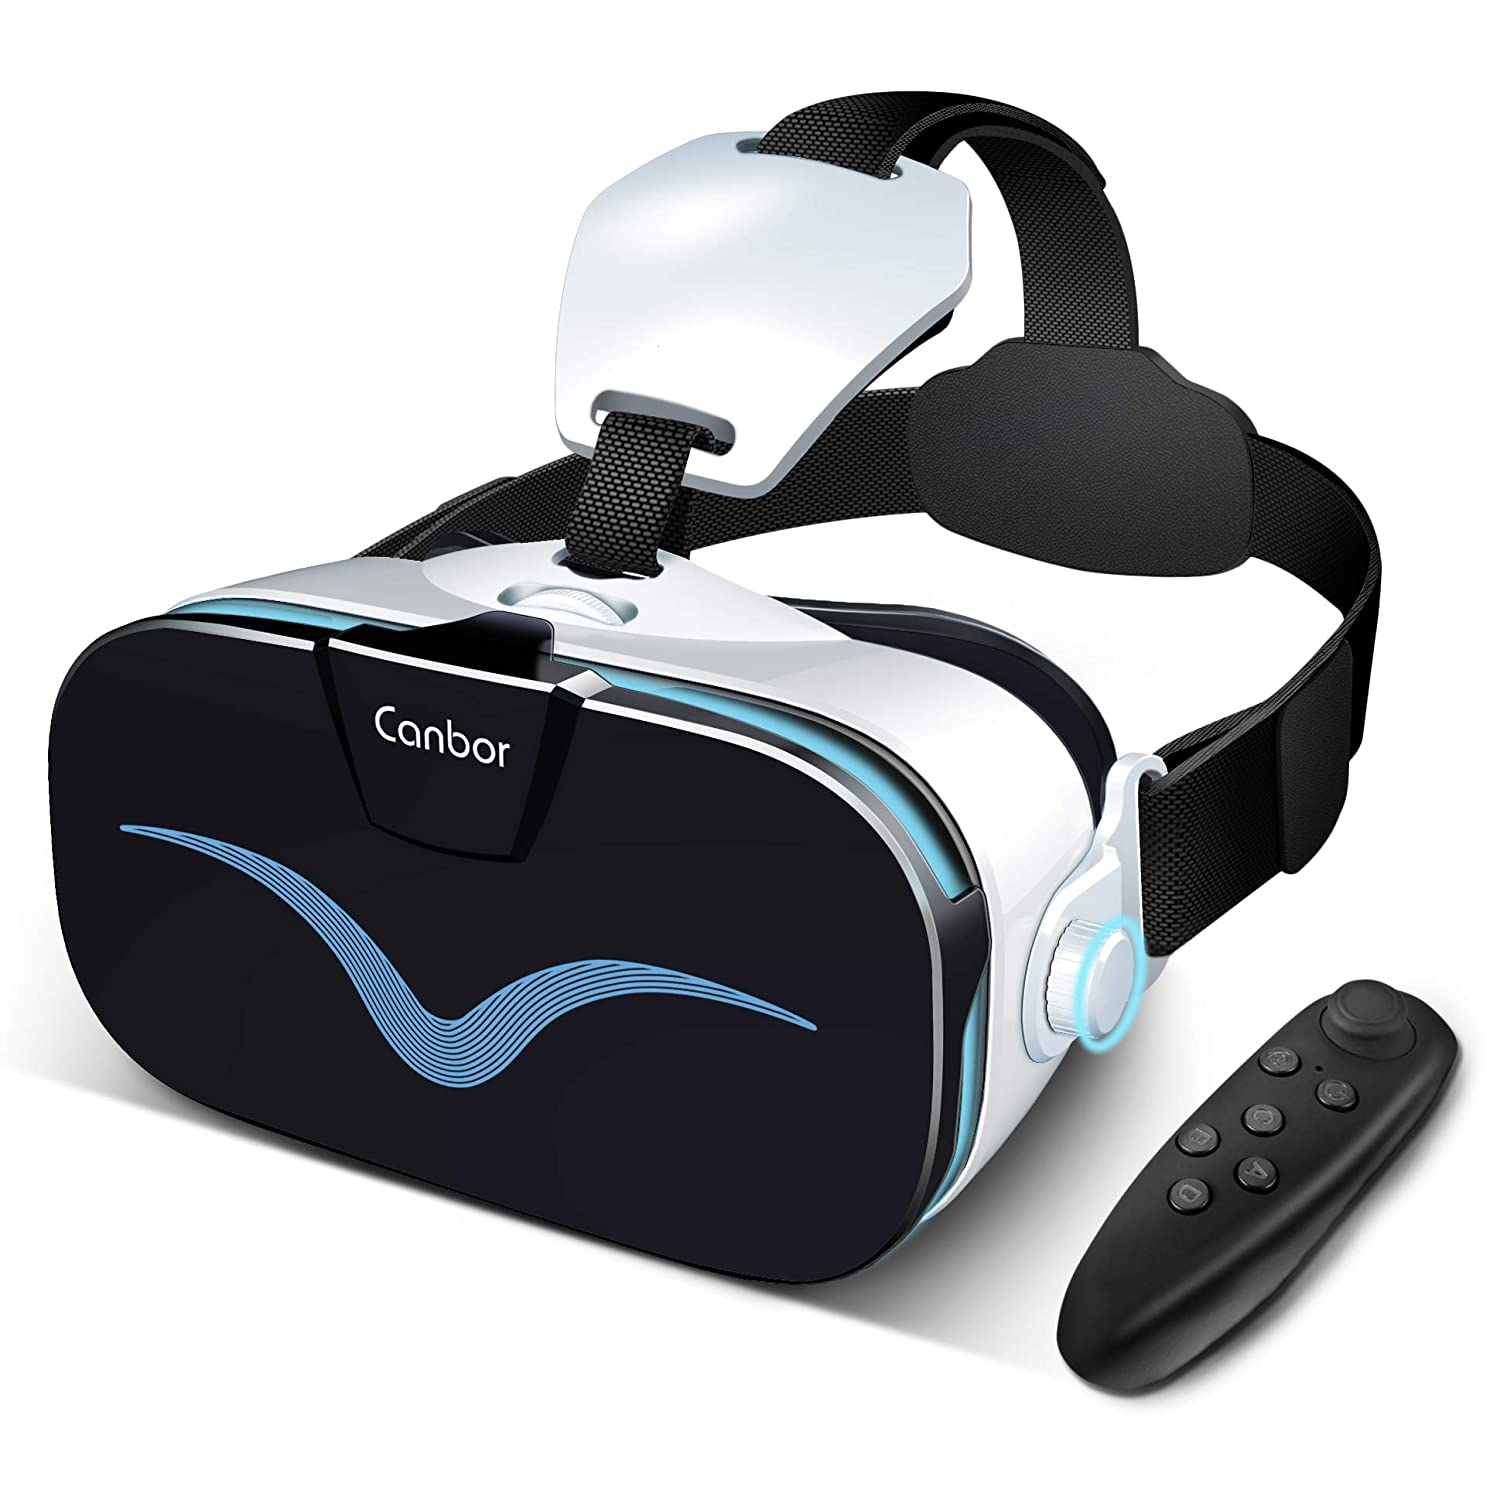 Canbor VR Headset with Controller Remote, Virtual Reality Headset 3D VR  Goggles Glasses Compatible with 4 0-6 3 Inches Apples iPhone Samsung Sony  More